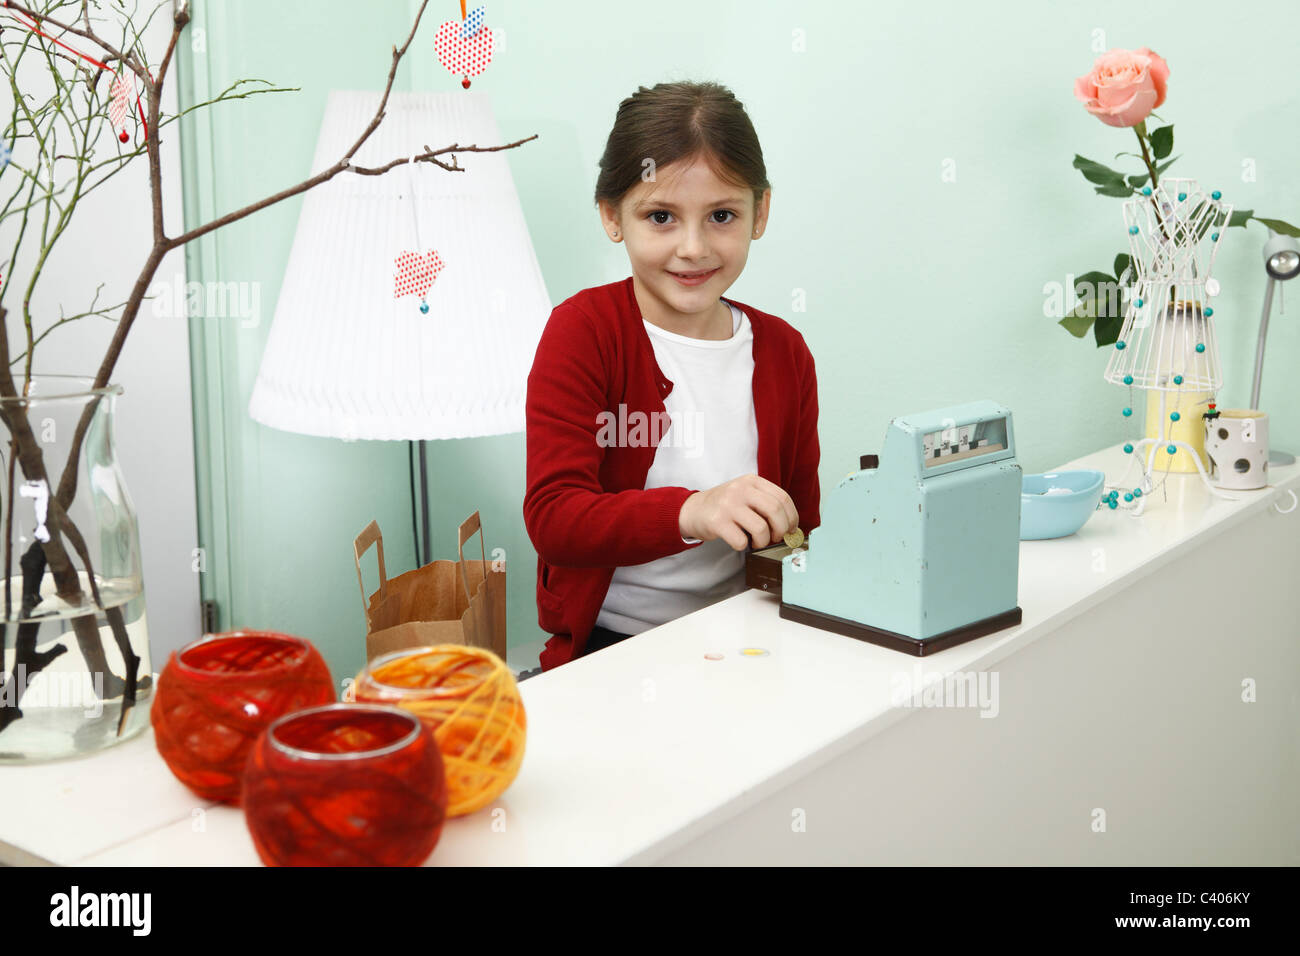 girl working behind shop till - Stock Image